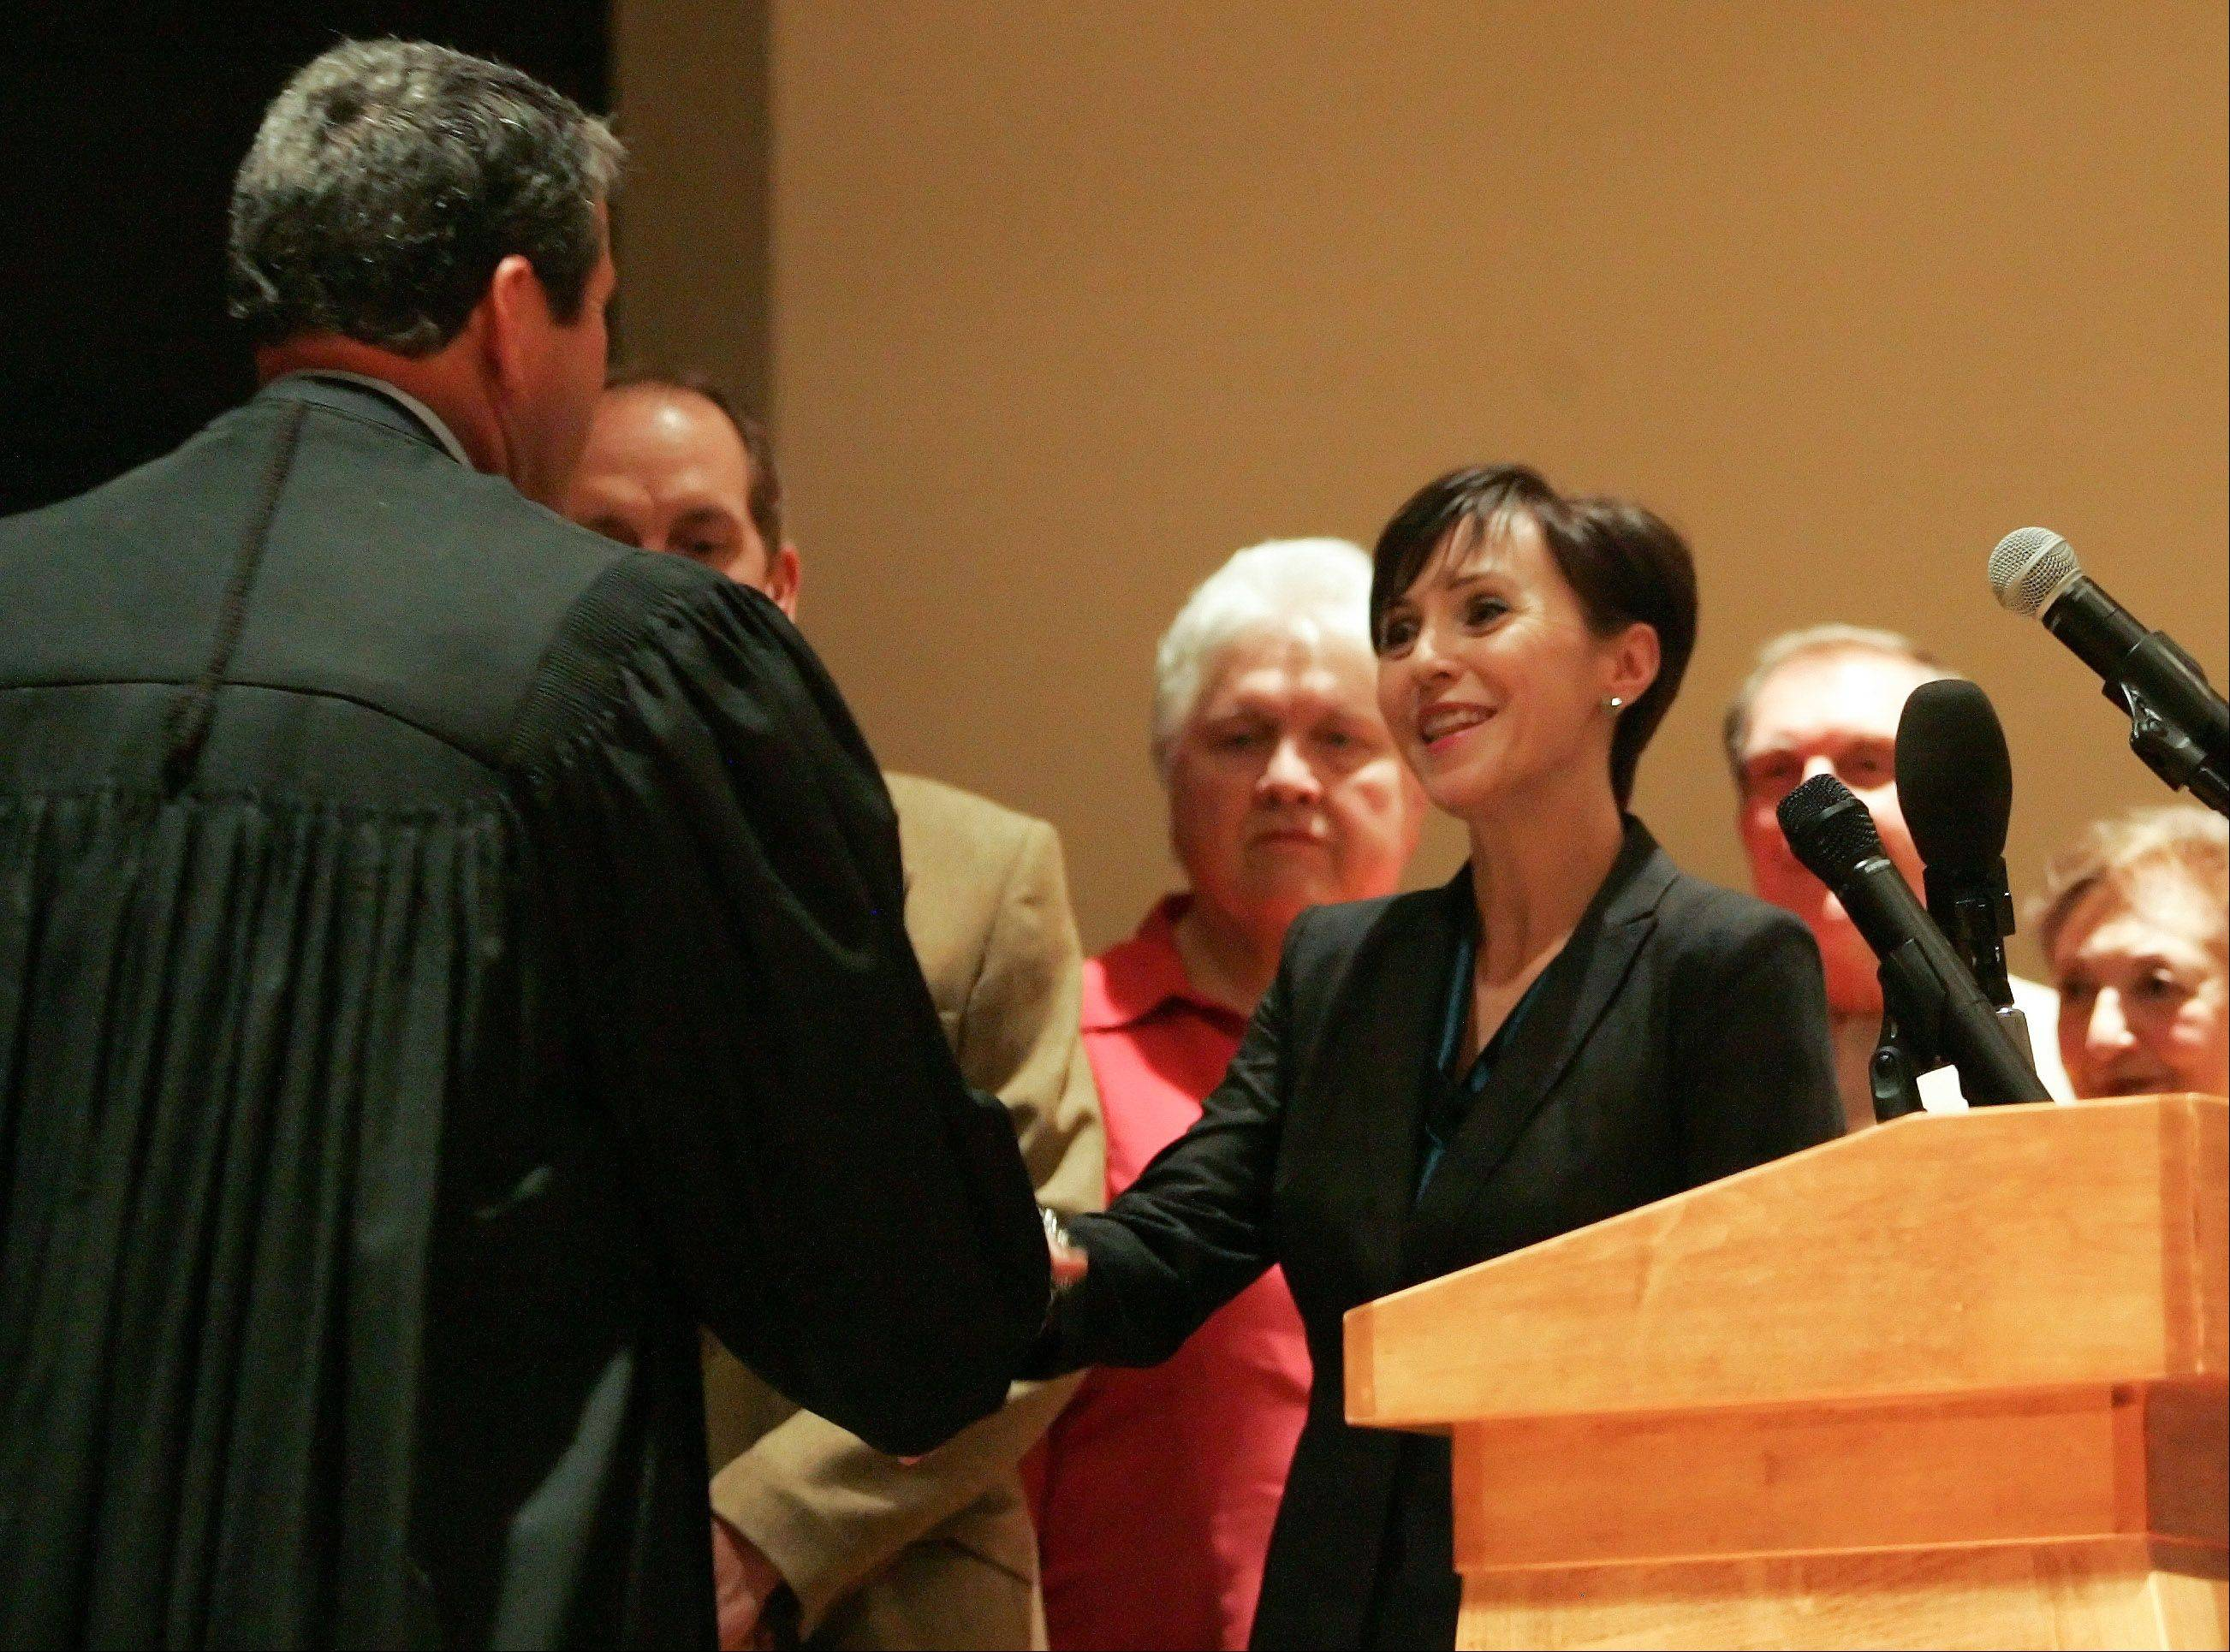 Elizabeth Chaplin is congratulated by Judge John Elsner after being sworn in as a District 2 county board member during the 2012 Inauguration of DuPage County elected officials at the Jack T. Knuepfer Administration building in Wheaton on Monday.